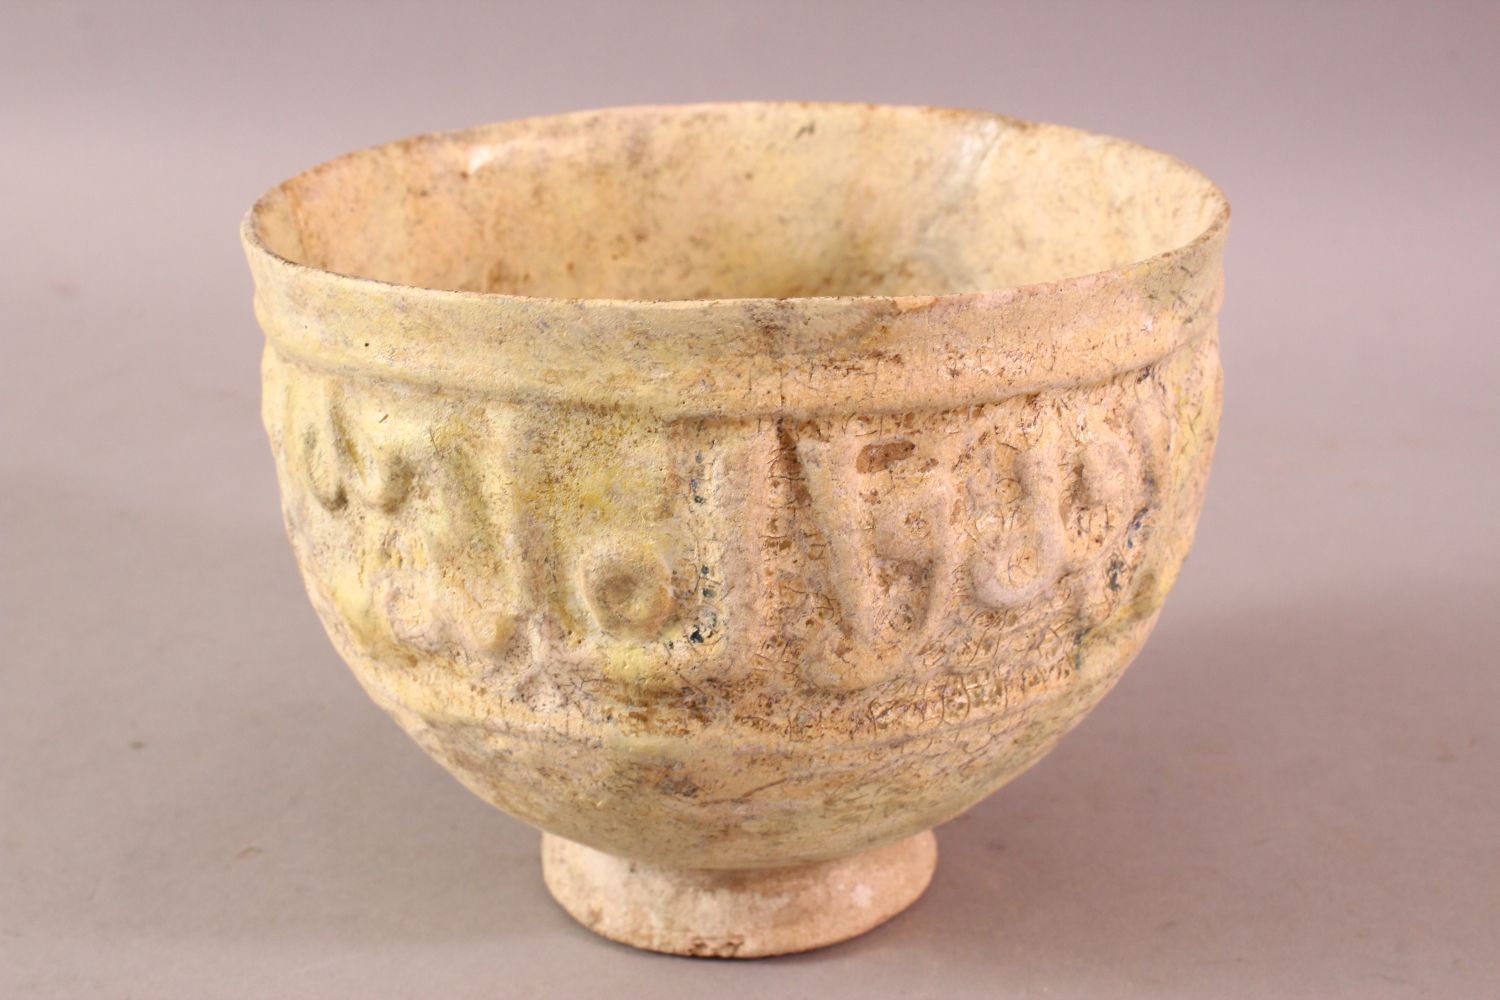 A 12TH CENTURY KUFIC SCRIPT GLAZED POTTERY BOWL, the exterior with moulded script, 15cm diameter, - Image 4 of 6